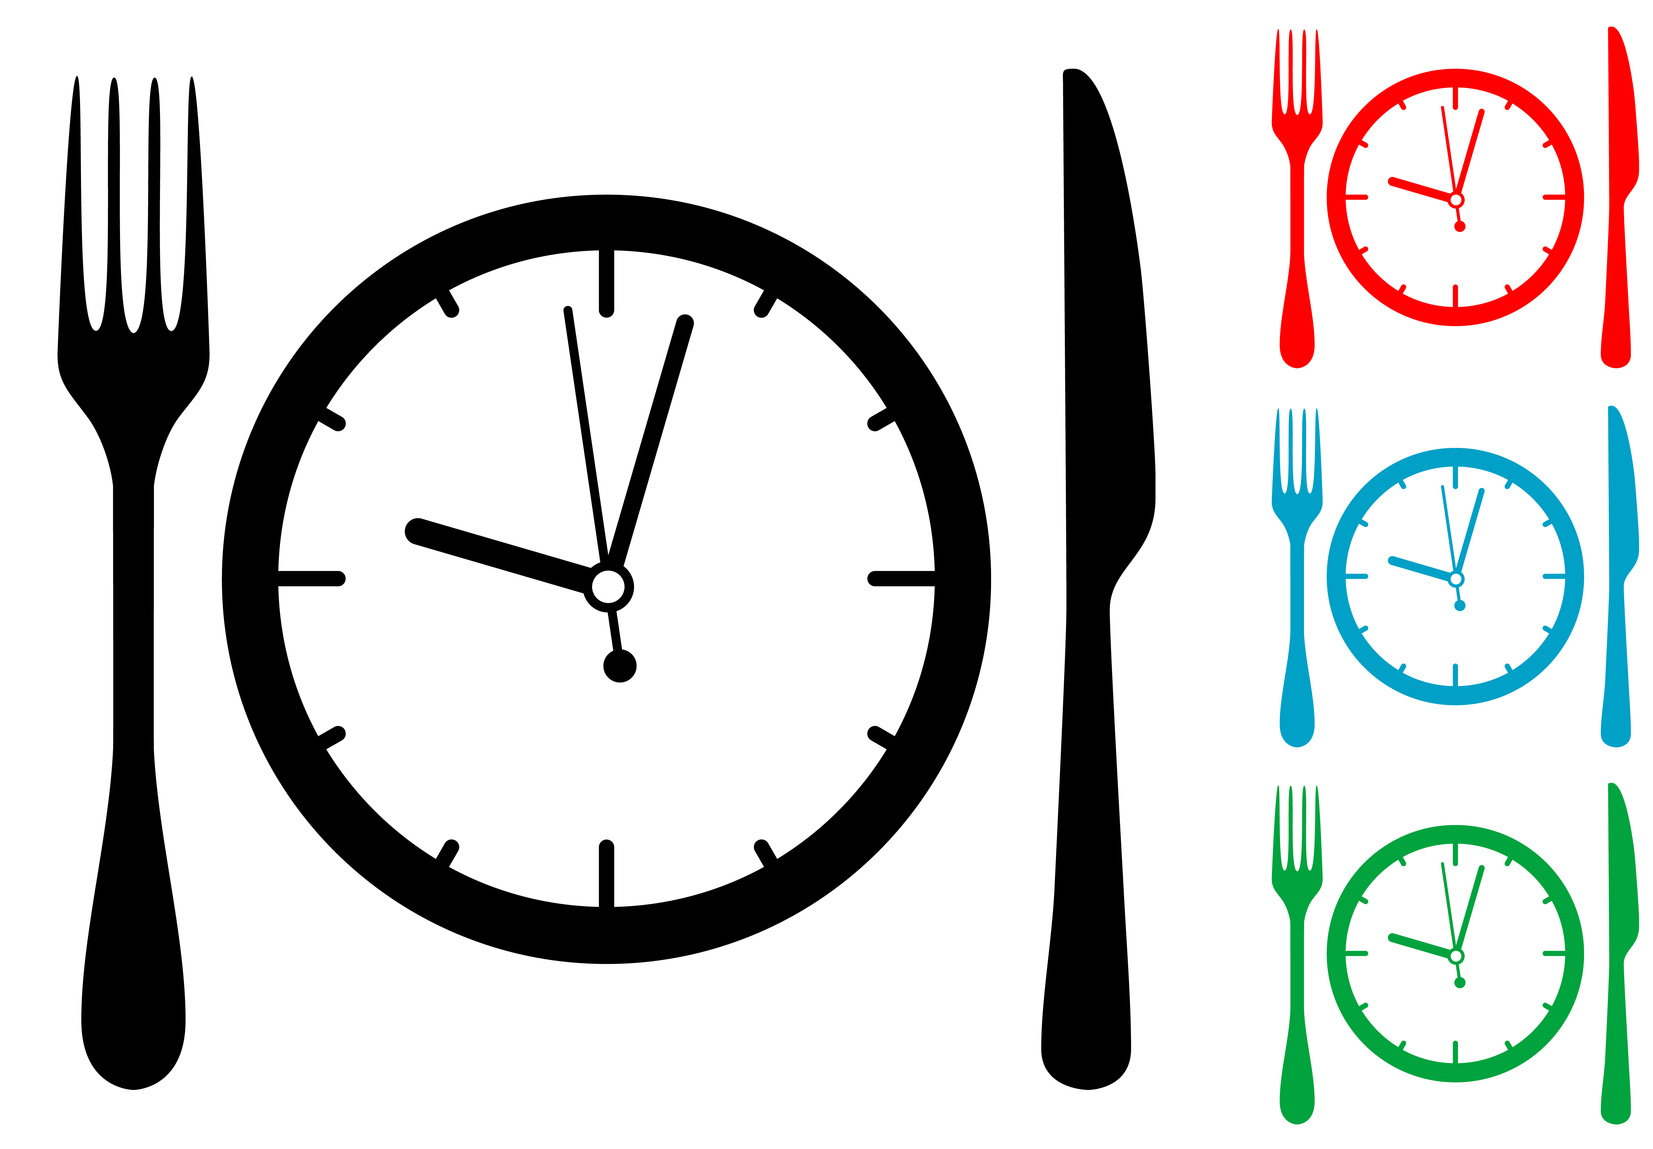 Intermittent Fasting - The Good, The Bad And The Ugly